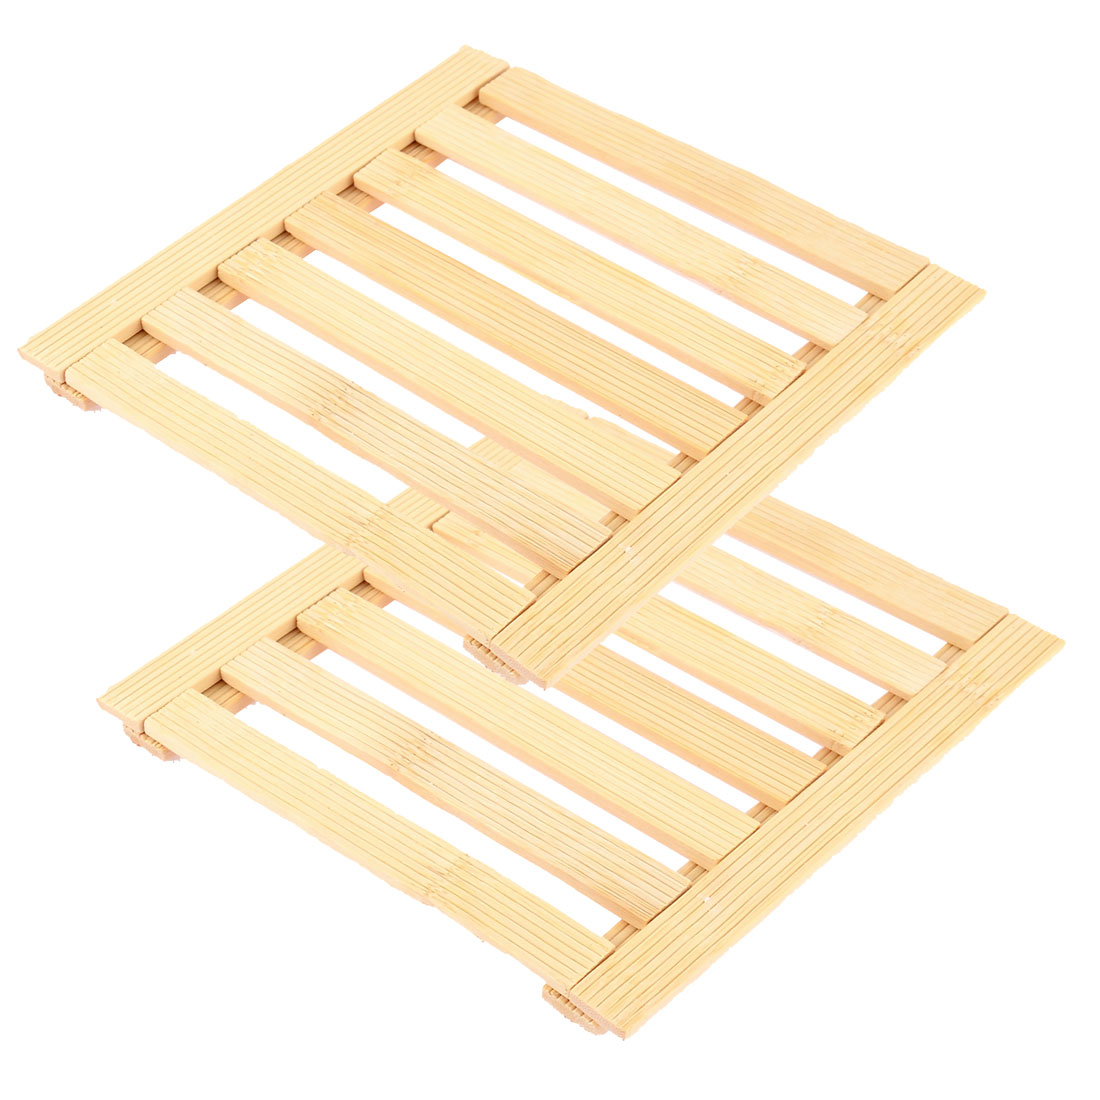 Kitchen Table Cup Bamboo Insulation Mat Coaster Wooden Color 17 x 17cm 2pcs